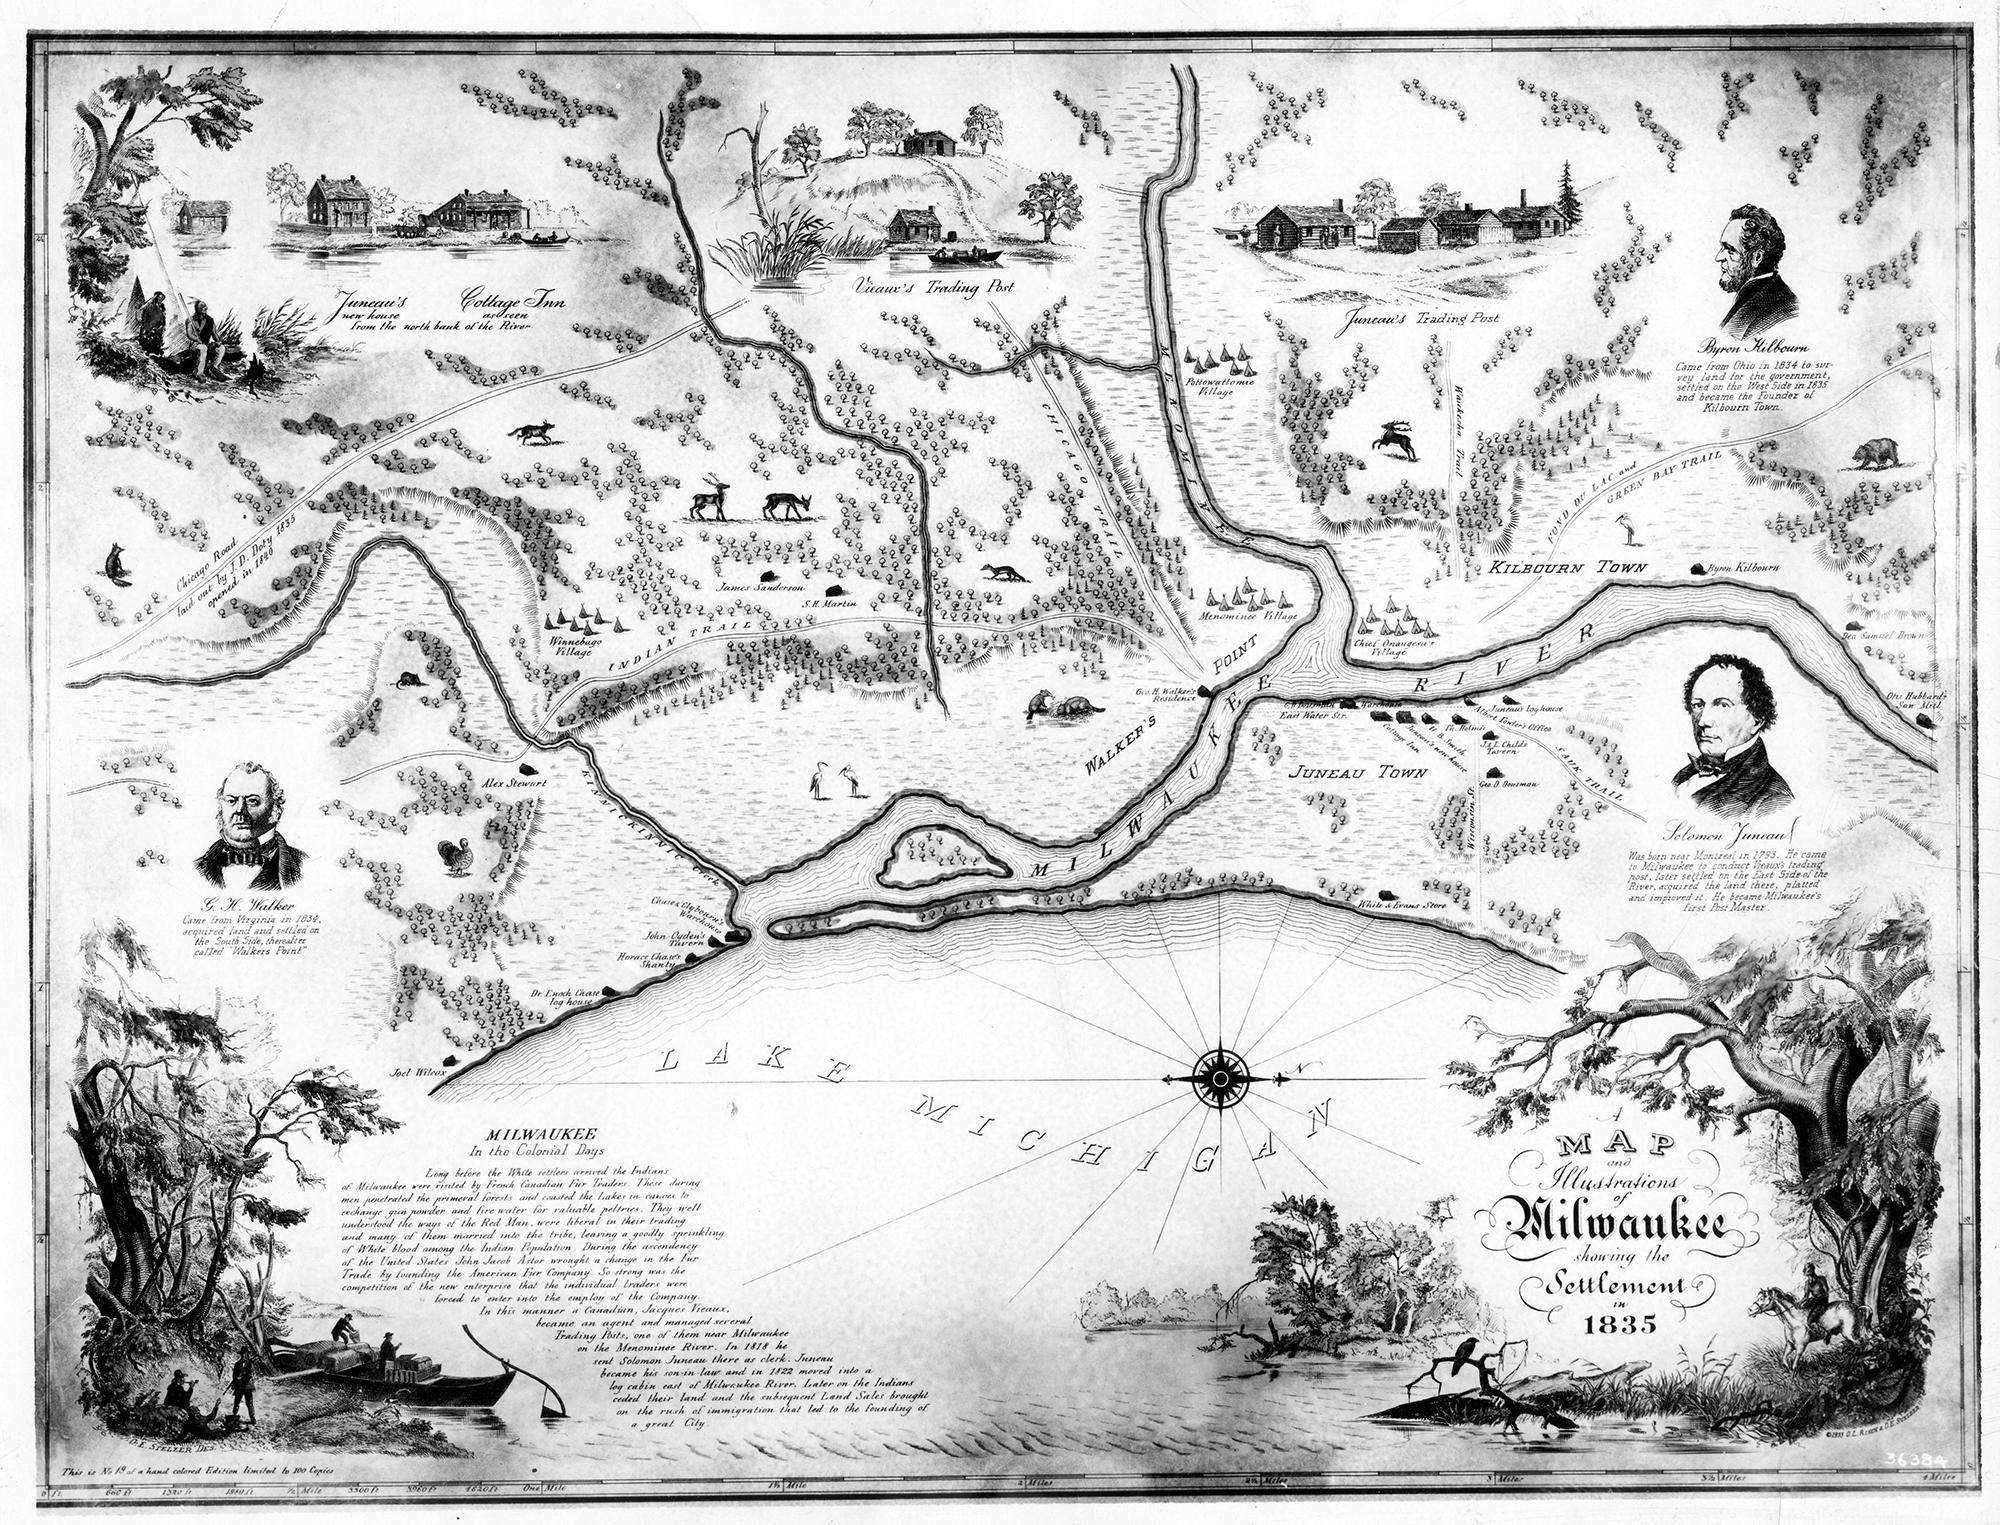 Map of Milwaukee print, circa 1835 showing founding fathers, Lake Michigan, Milwaukee, Menomonee rivers, and Kinnickinnic rivers (at this time, named Kinnickinnic creek) and Native American villages.